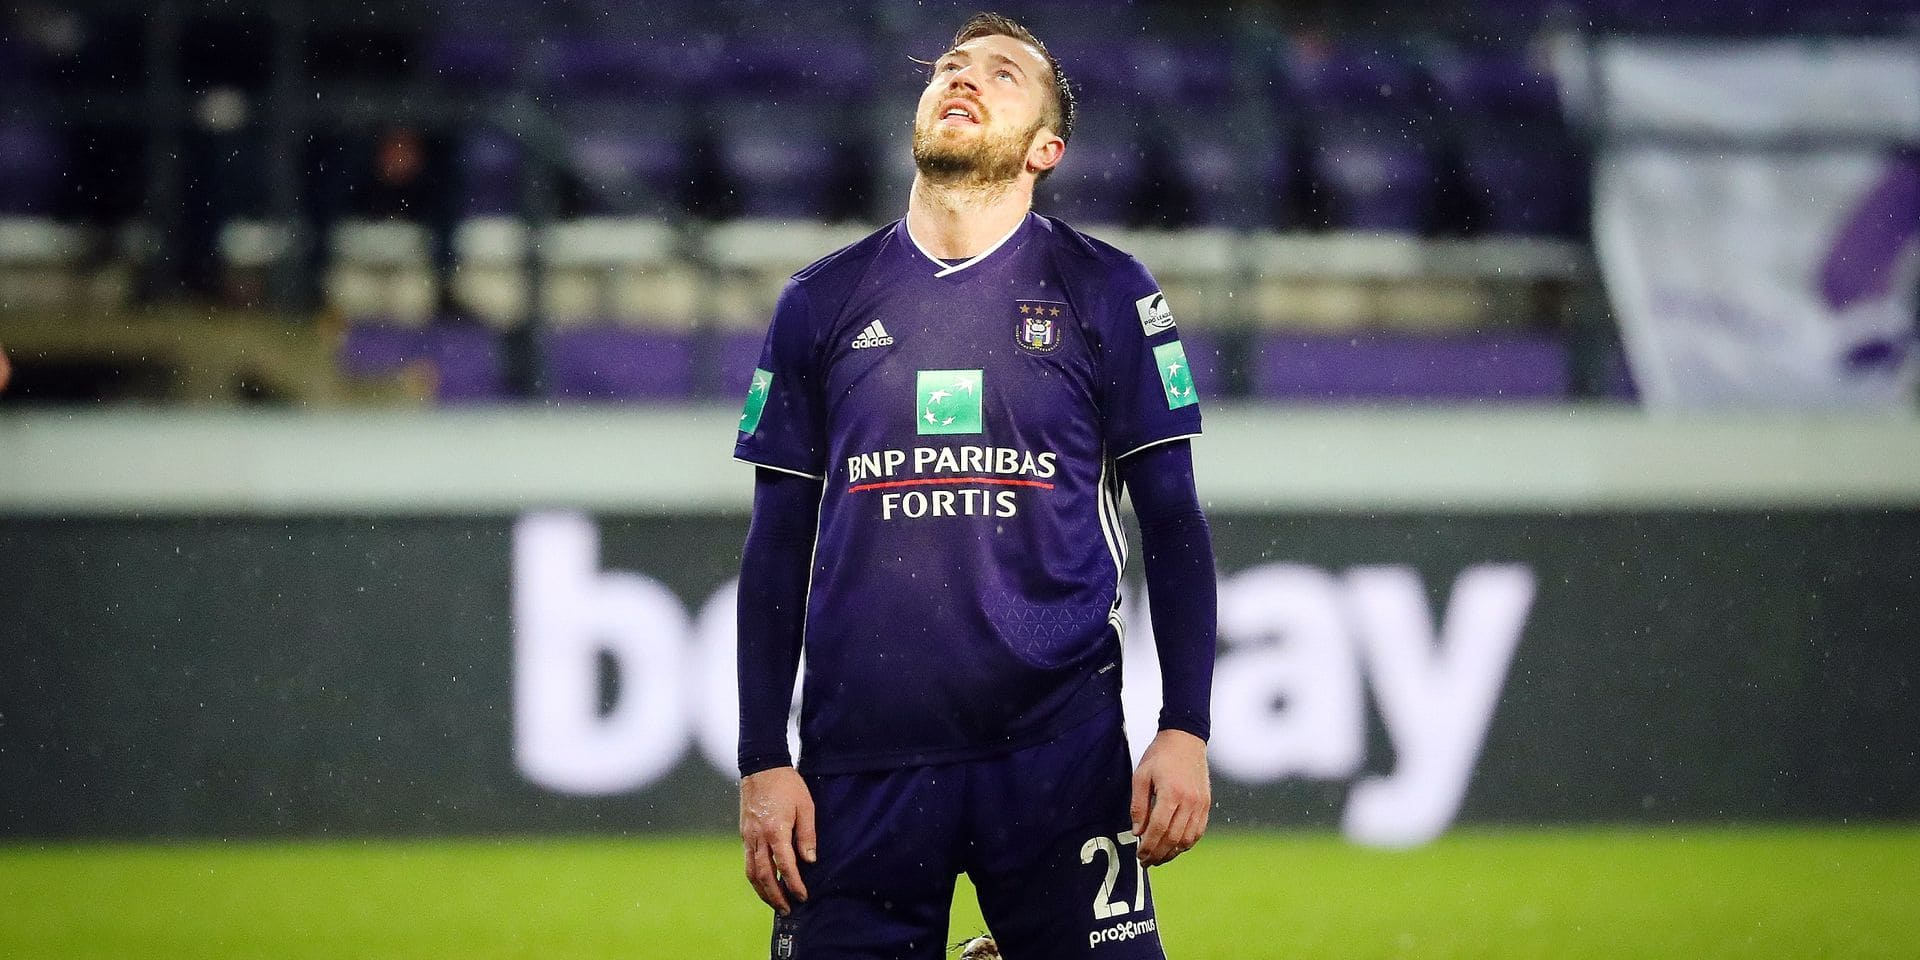 Anderlecht's Peter Zulj looks dejected during the soccer match between RSC Anderlecht and Zulte-Waregem, Sunday 10 February 2019 in Brussels, on the 25th day of the 'Jupiler Pro League' Belgian soccer championship season 2018-2019. BELGA PHOTO VIRGINIE LEFOUR